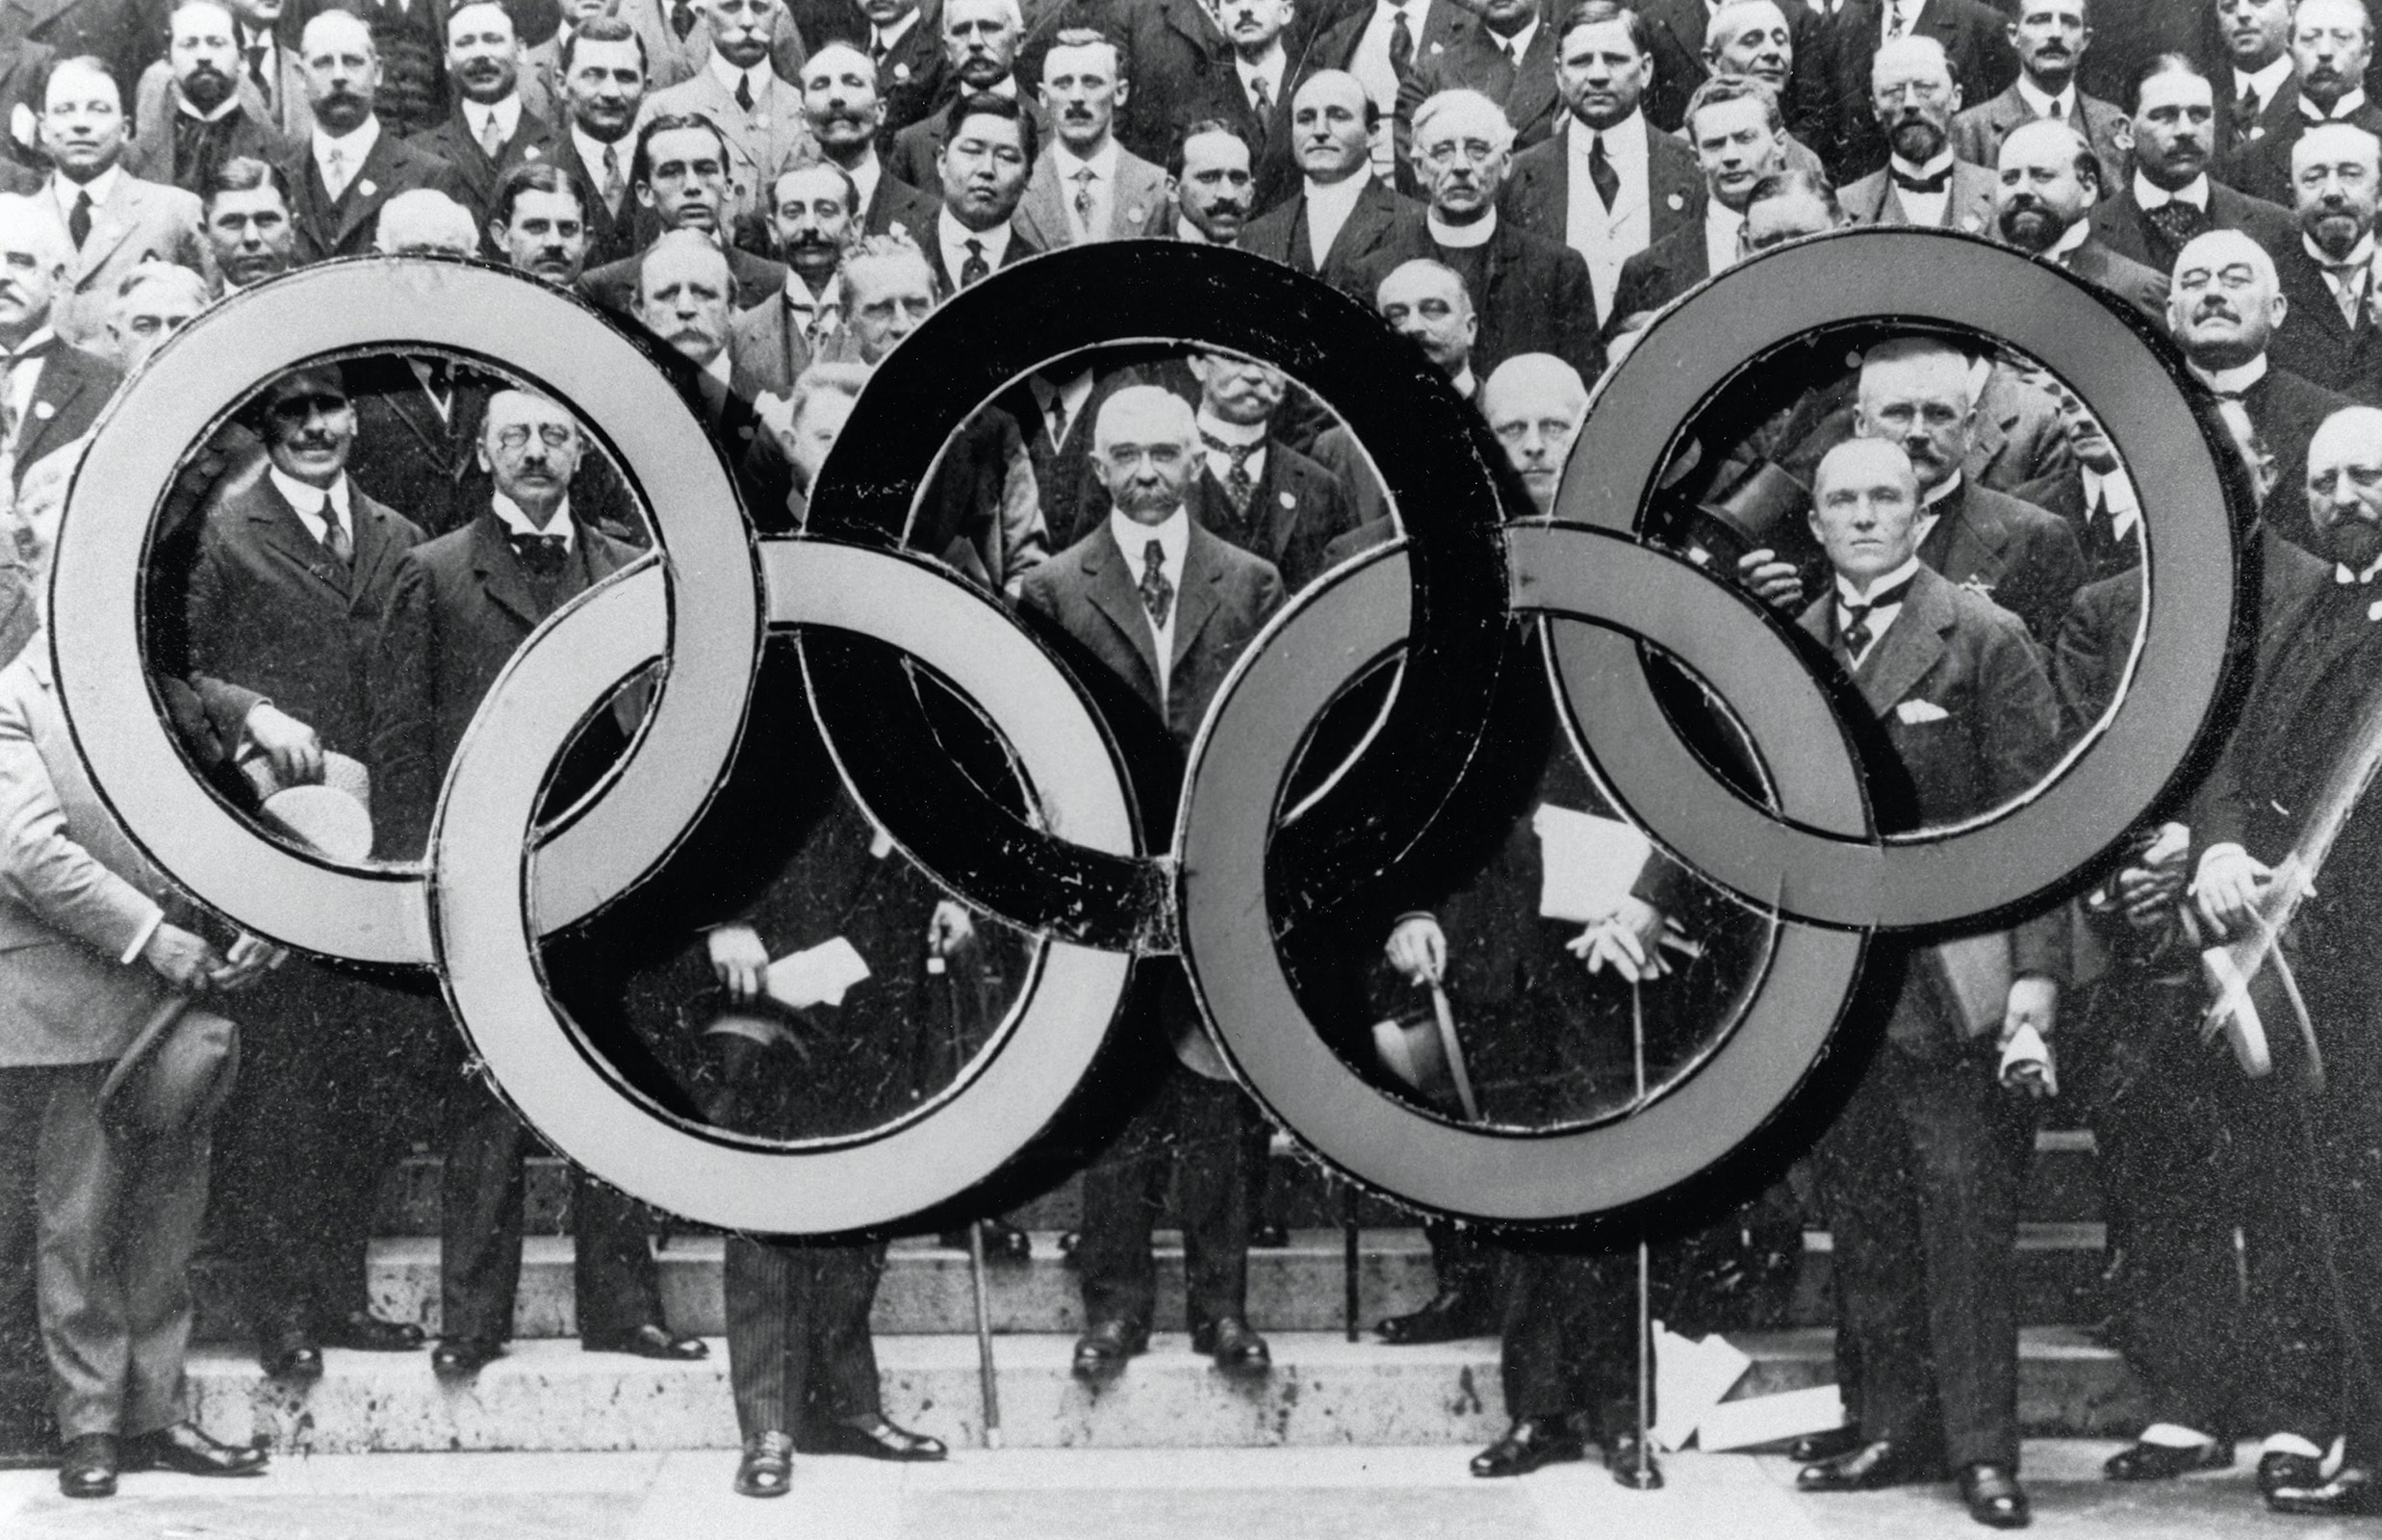 17th IOC Session in Paris, 1914 - Group photograph of the participants. In the middle : Pierre de COUBERTIN, IOC Pdt.